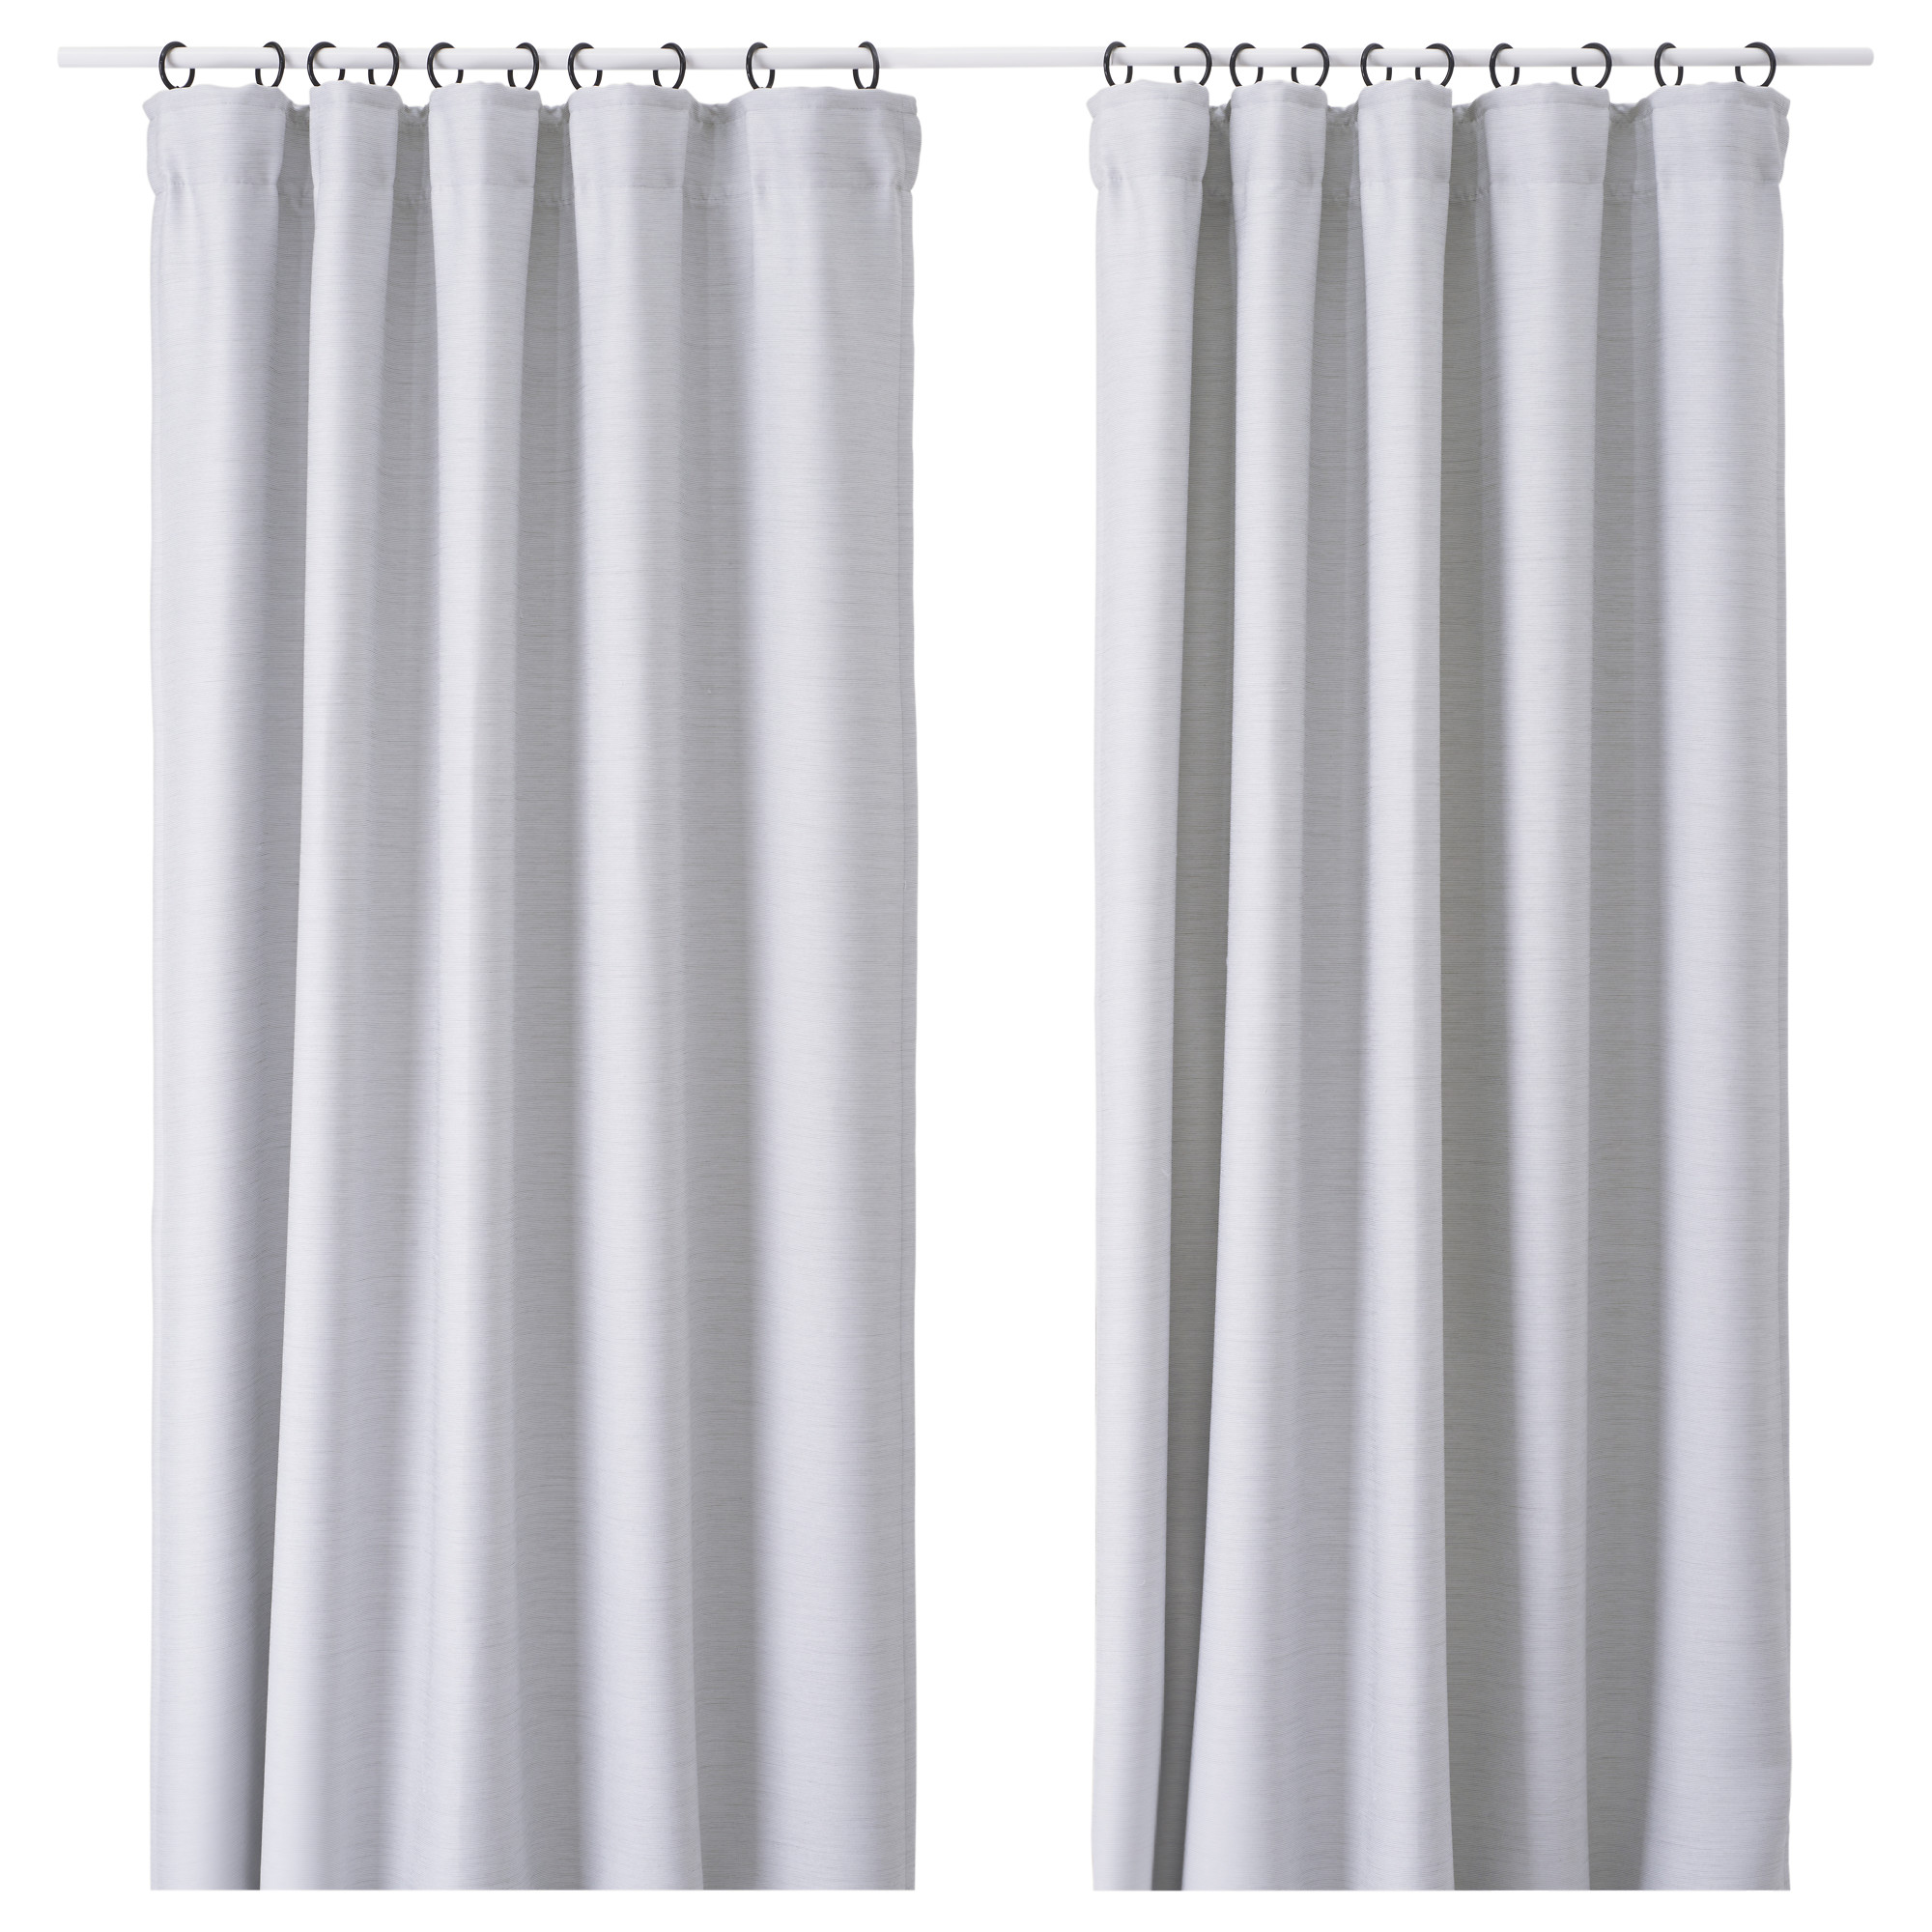 curtains koikaa image thermal products product curtain darshi light gray grey